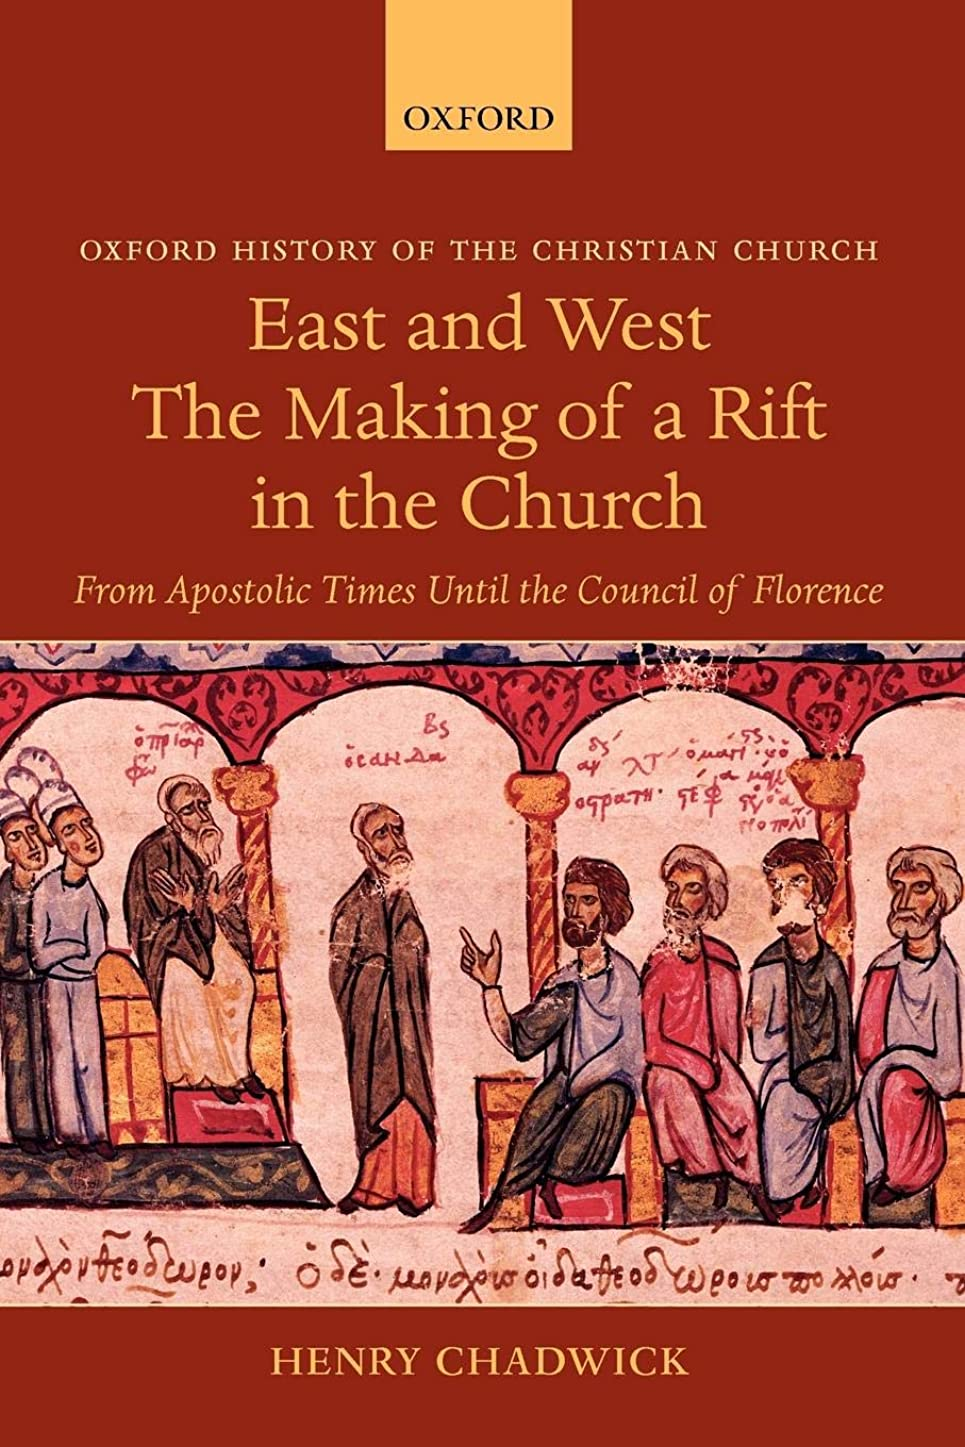 気付く盗賊敵意East and West: The Making of a Rift in the Church: from Apostolic Times Until the Council of Florence (Oxford History of the Christian Church)